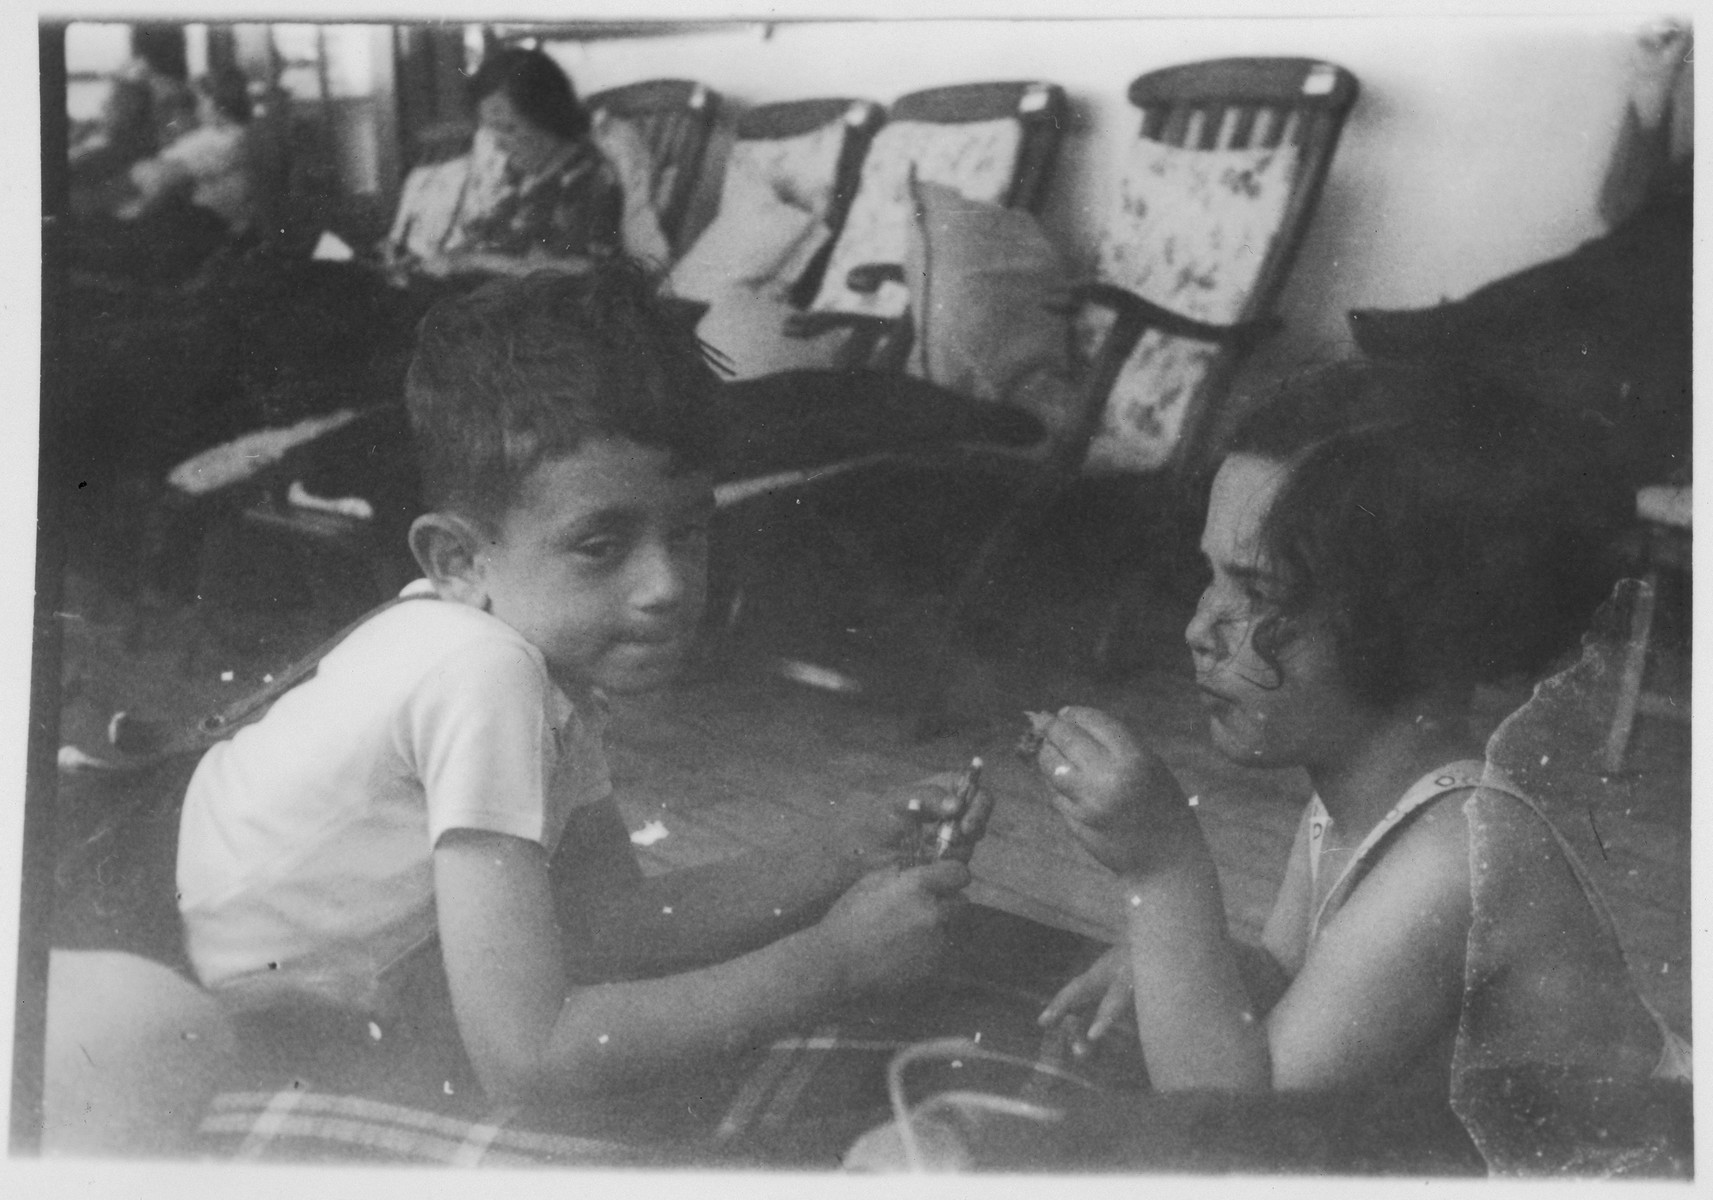 Two young Jewish refugee children play together on the deck of the MS St. Louis.